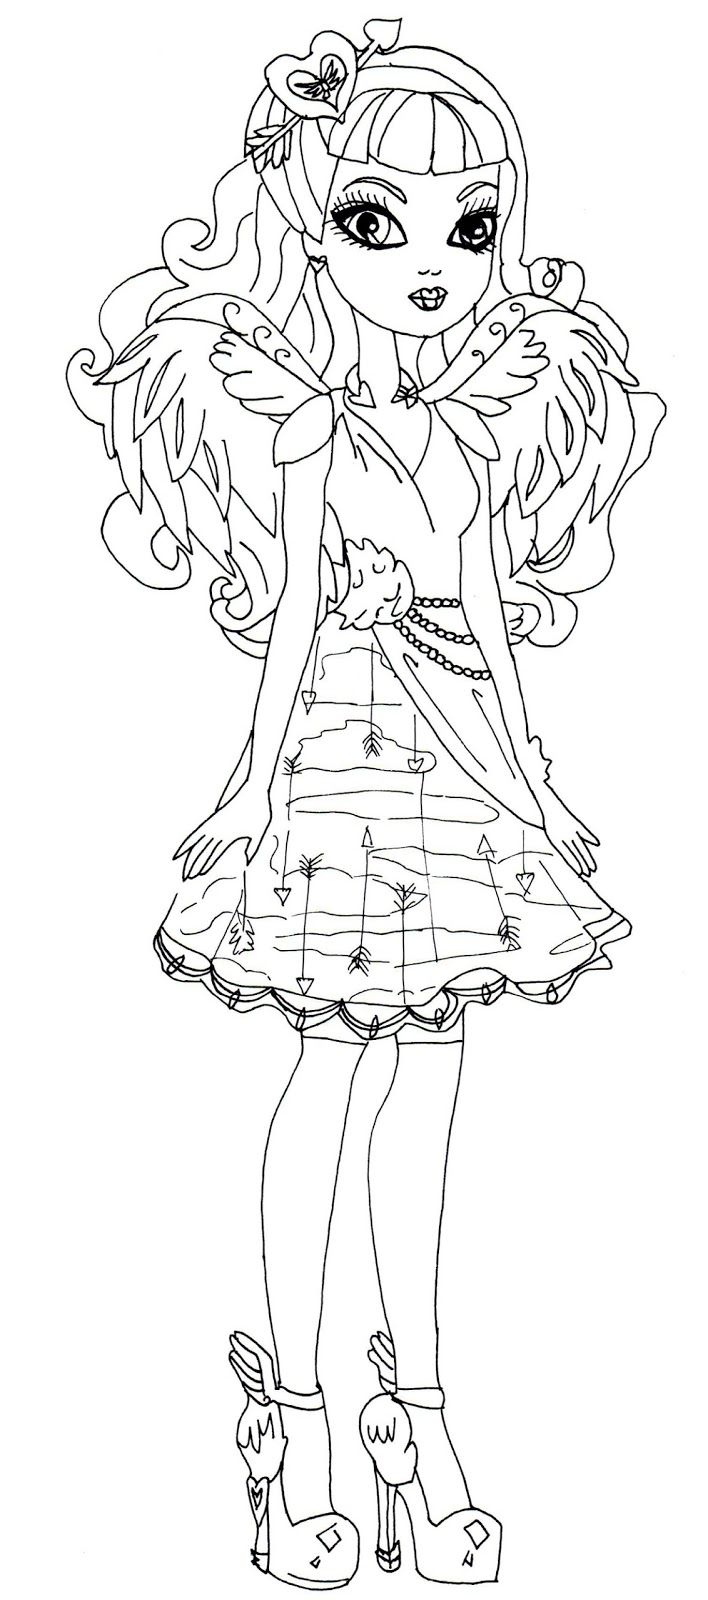 C A Cupid Ever After High Coloring Page Coloring Pages Cartoon Coloring Pages Free Printable Coloring